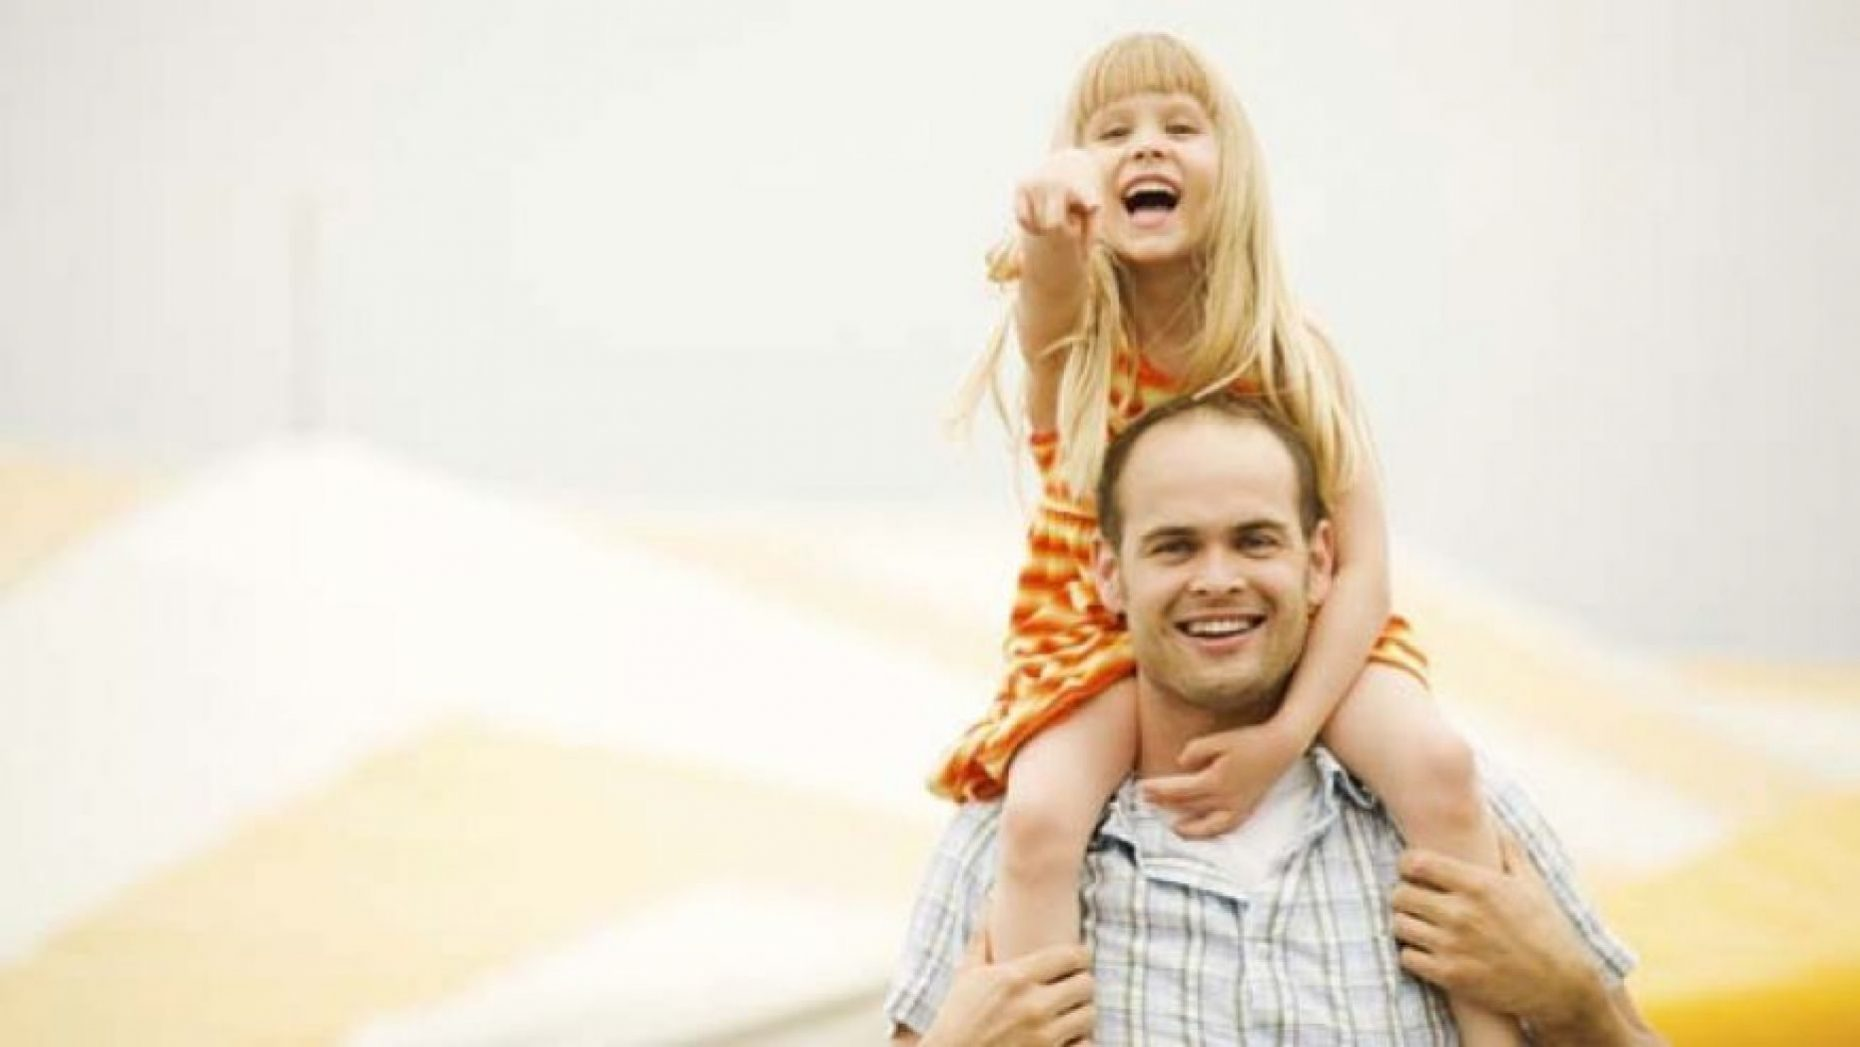 Tips for single dads for dating online